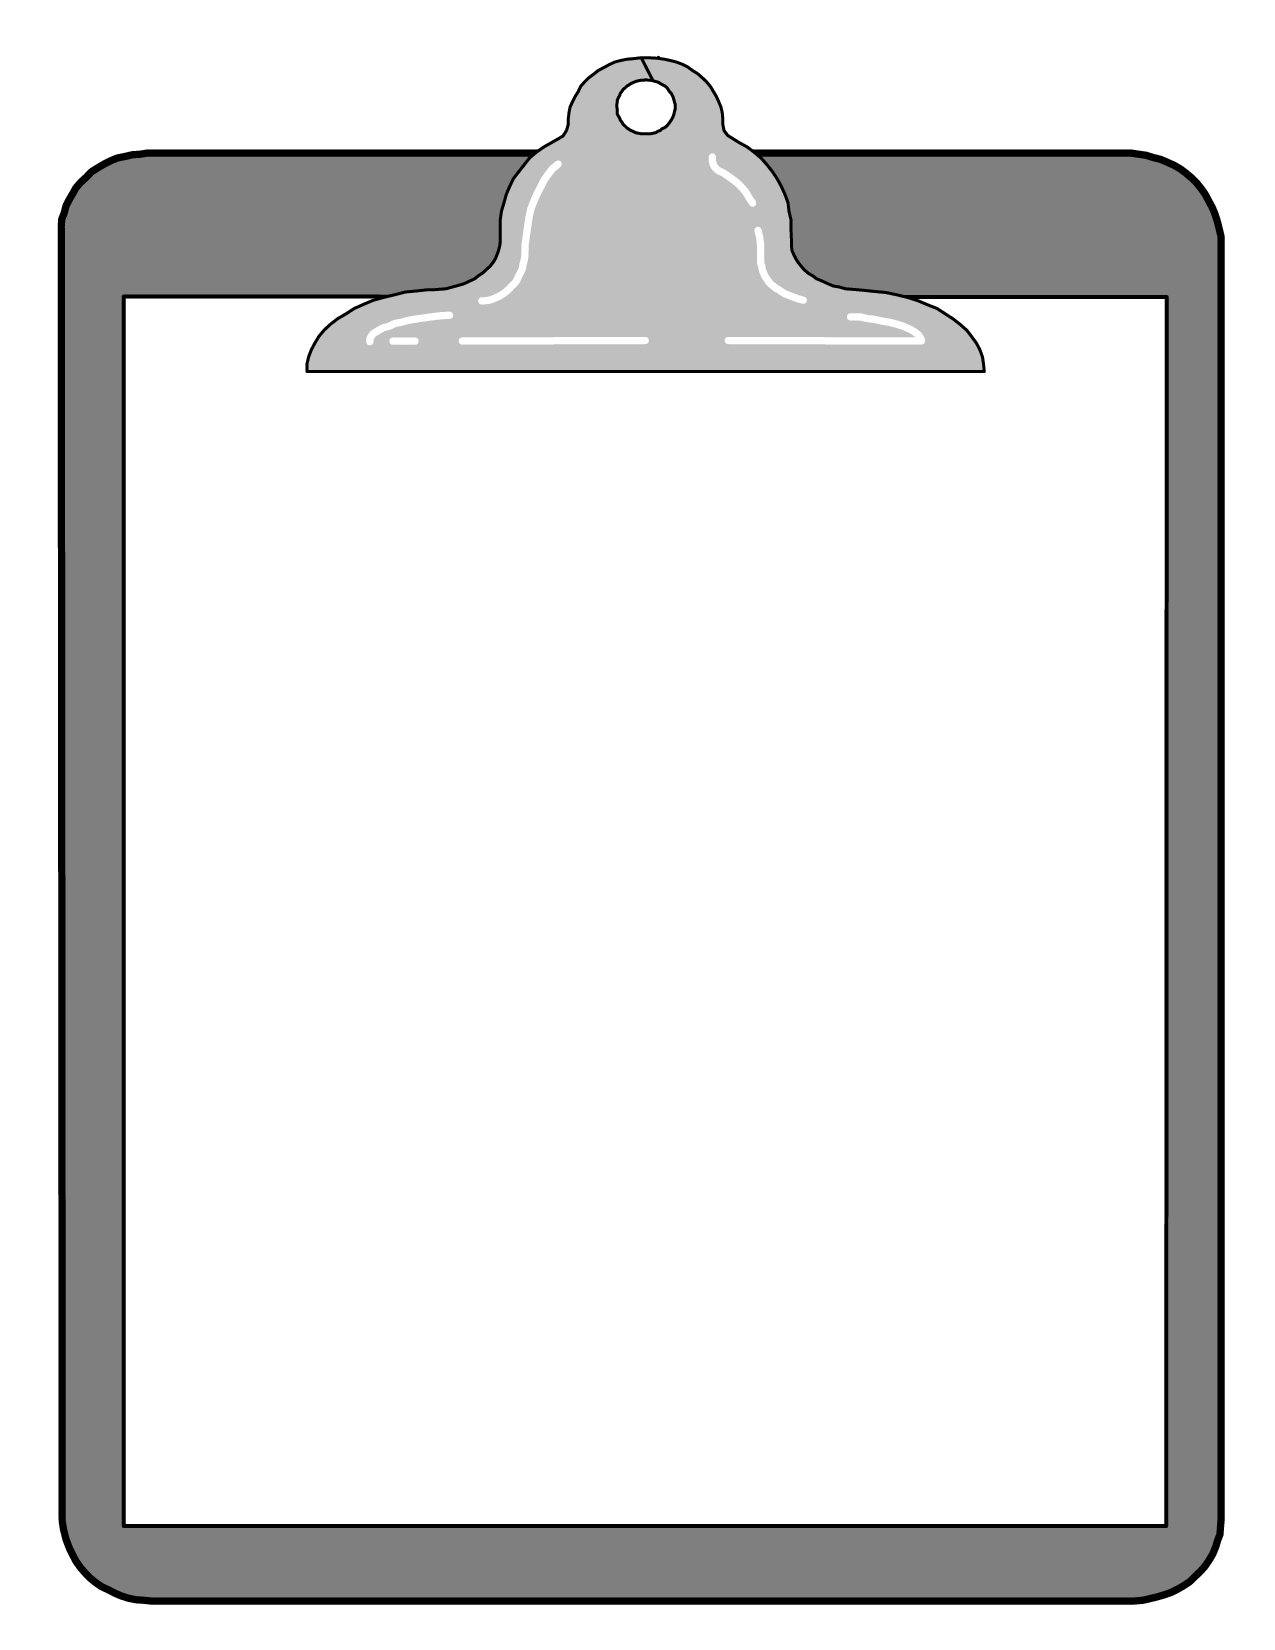 Clipboard clipart frame. Elegant of black and